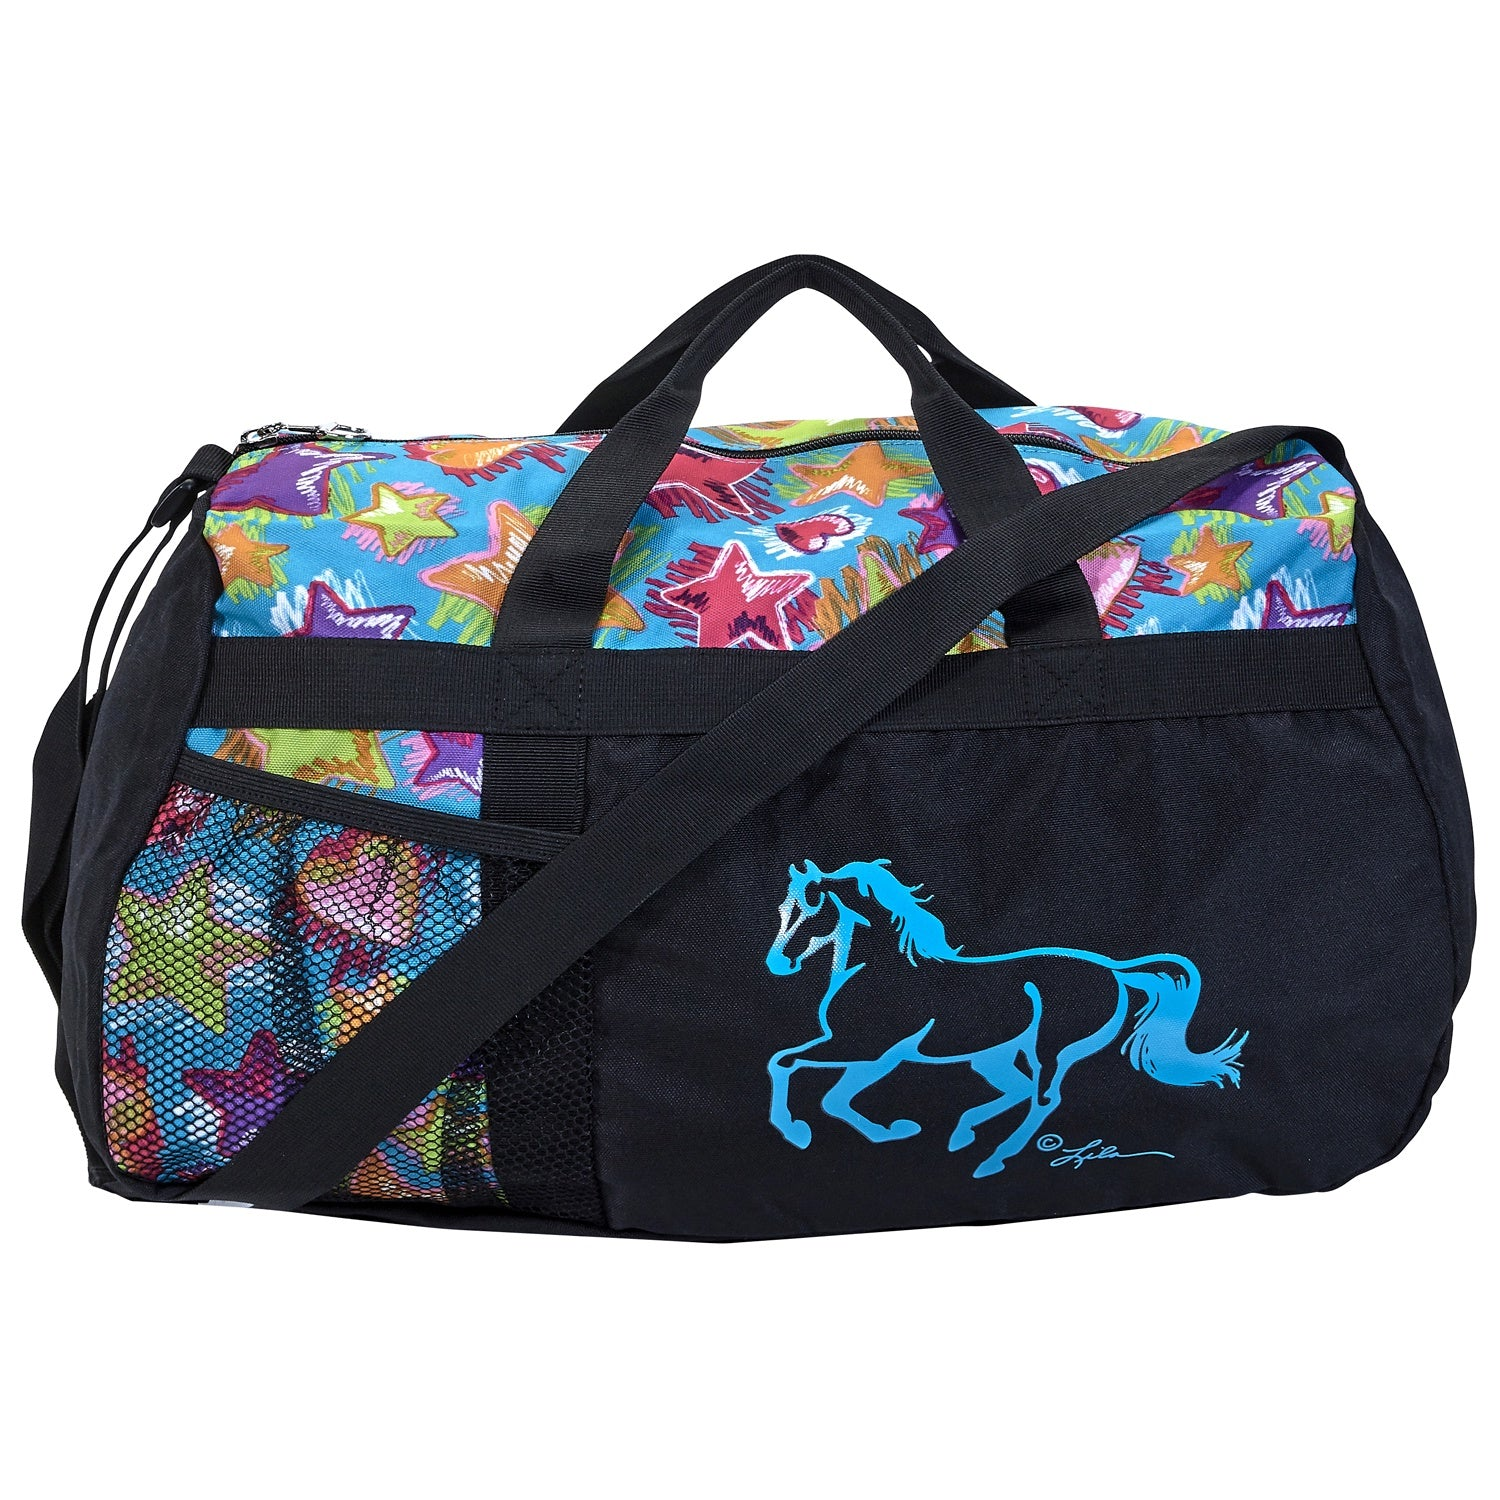 "Girls Overnight Bag - ""Stars and Hearts"""